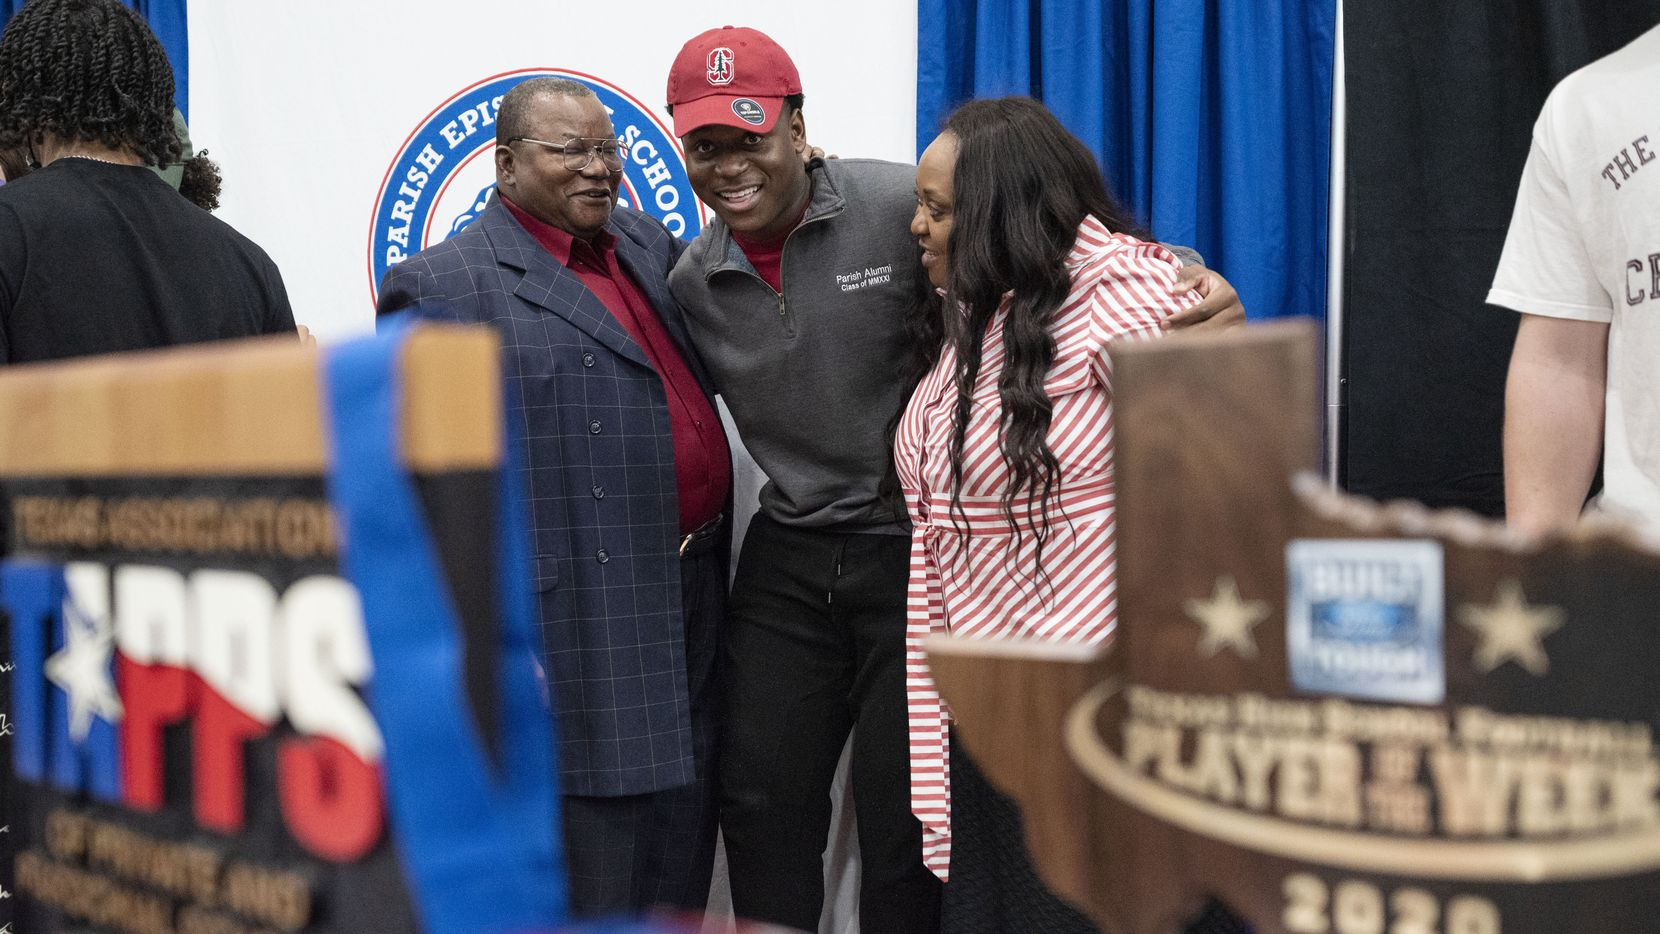 Senior Austin Uke is hugged by his parents Augustine Uke, left, and his mother Irene Uke, as the senior signed his letter of intent to play football for Stanford University during National Signing Day, on Wednesday, Feb. 02, 2021 at Parish Episcopal School in Dallas.